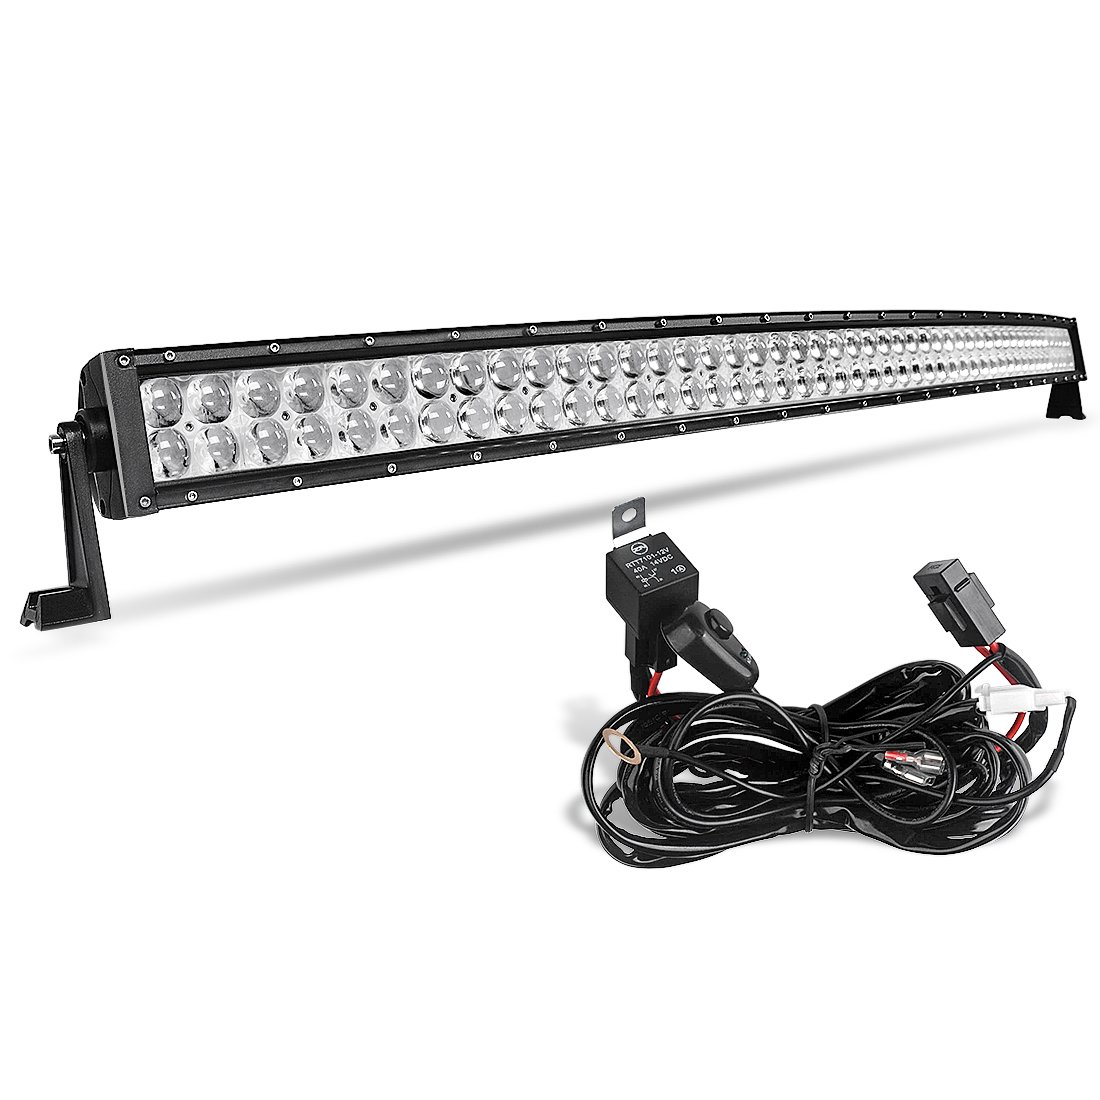 Amazon.com: AUTOSAVER88 4D 52 Inch Curved LED Light Bar 500W with ...